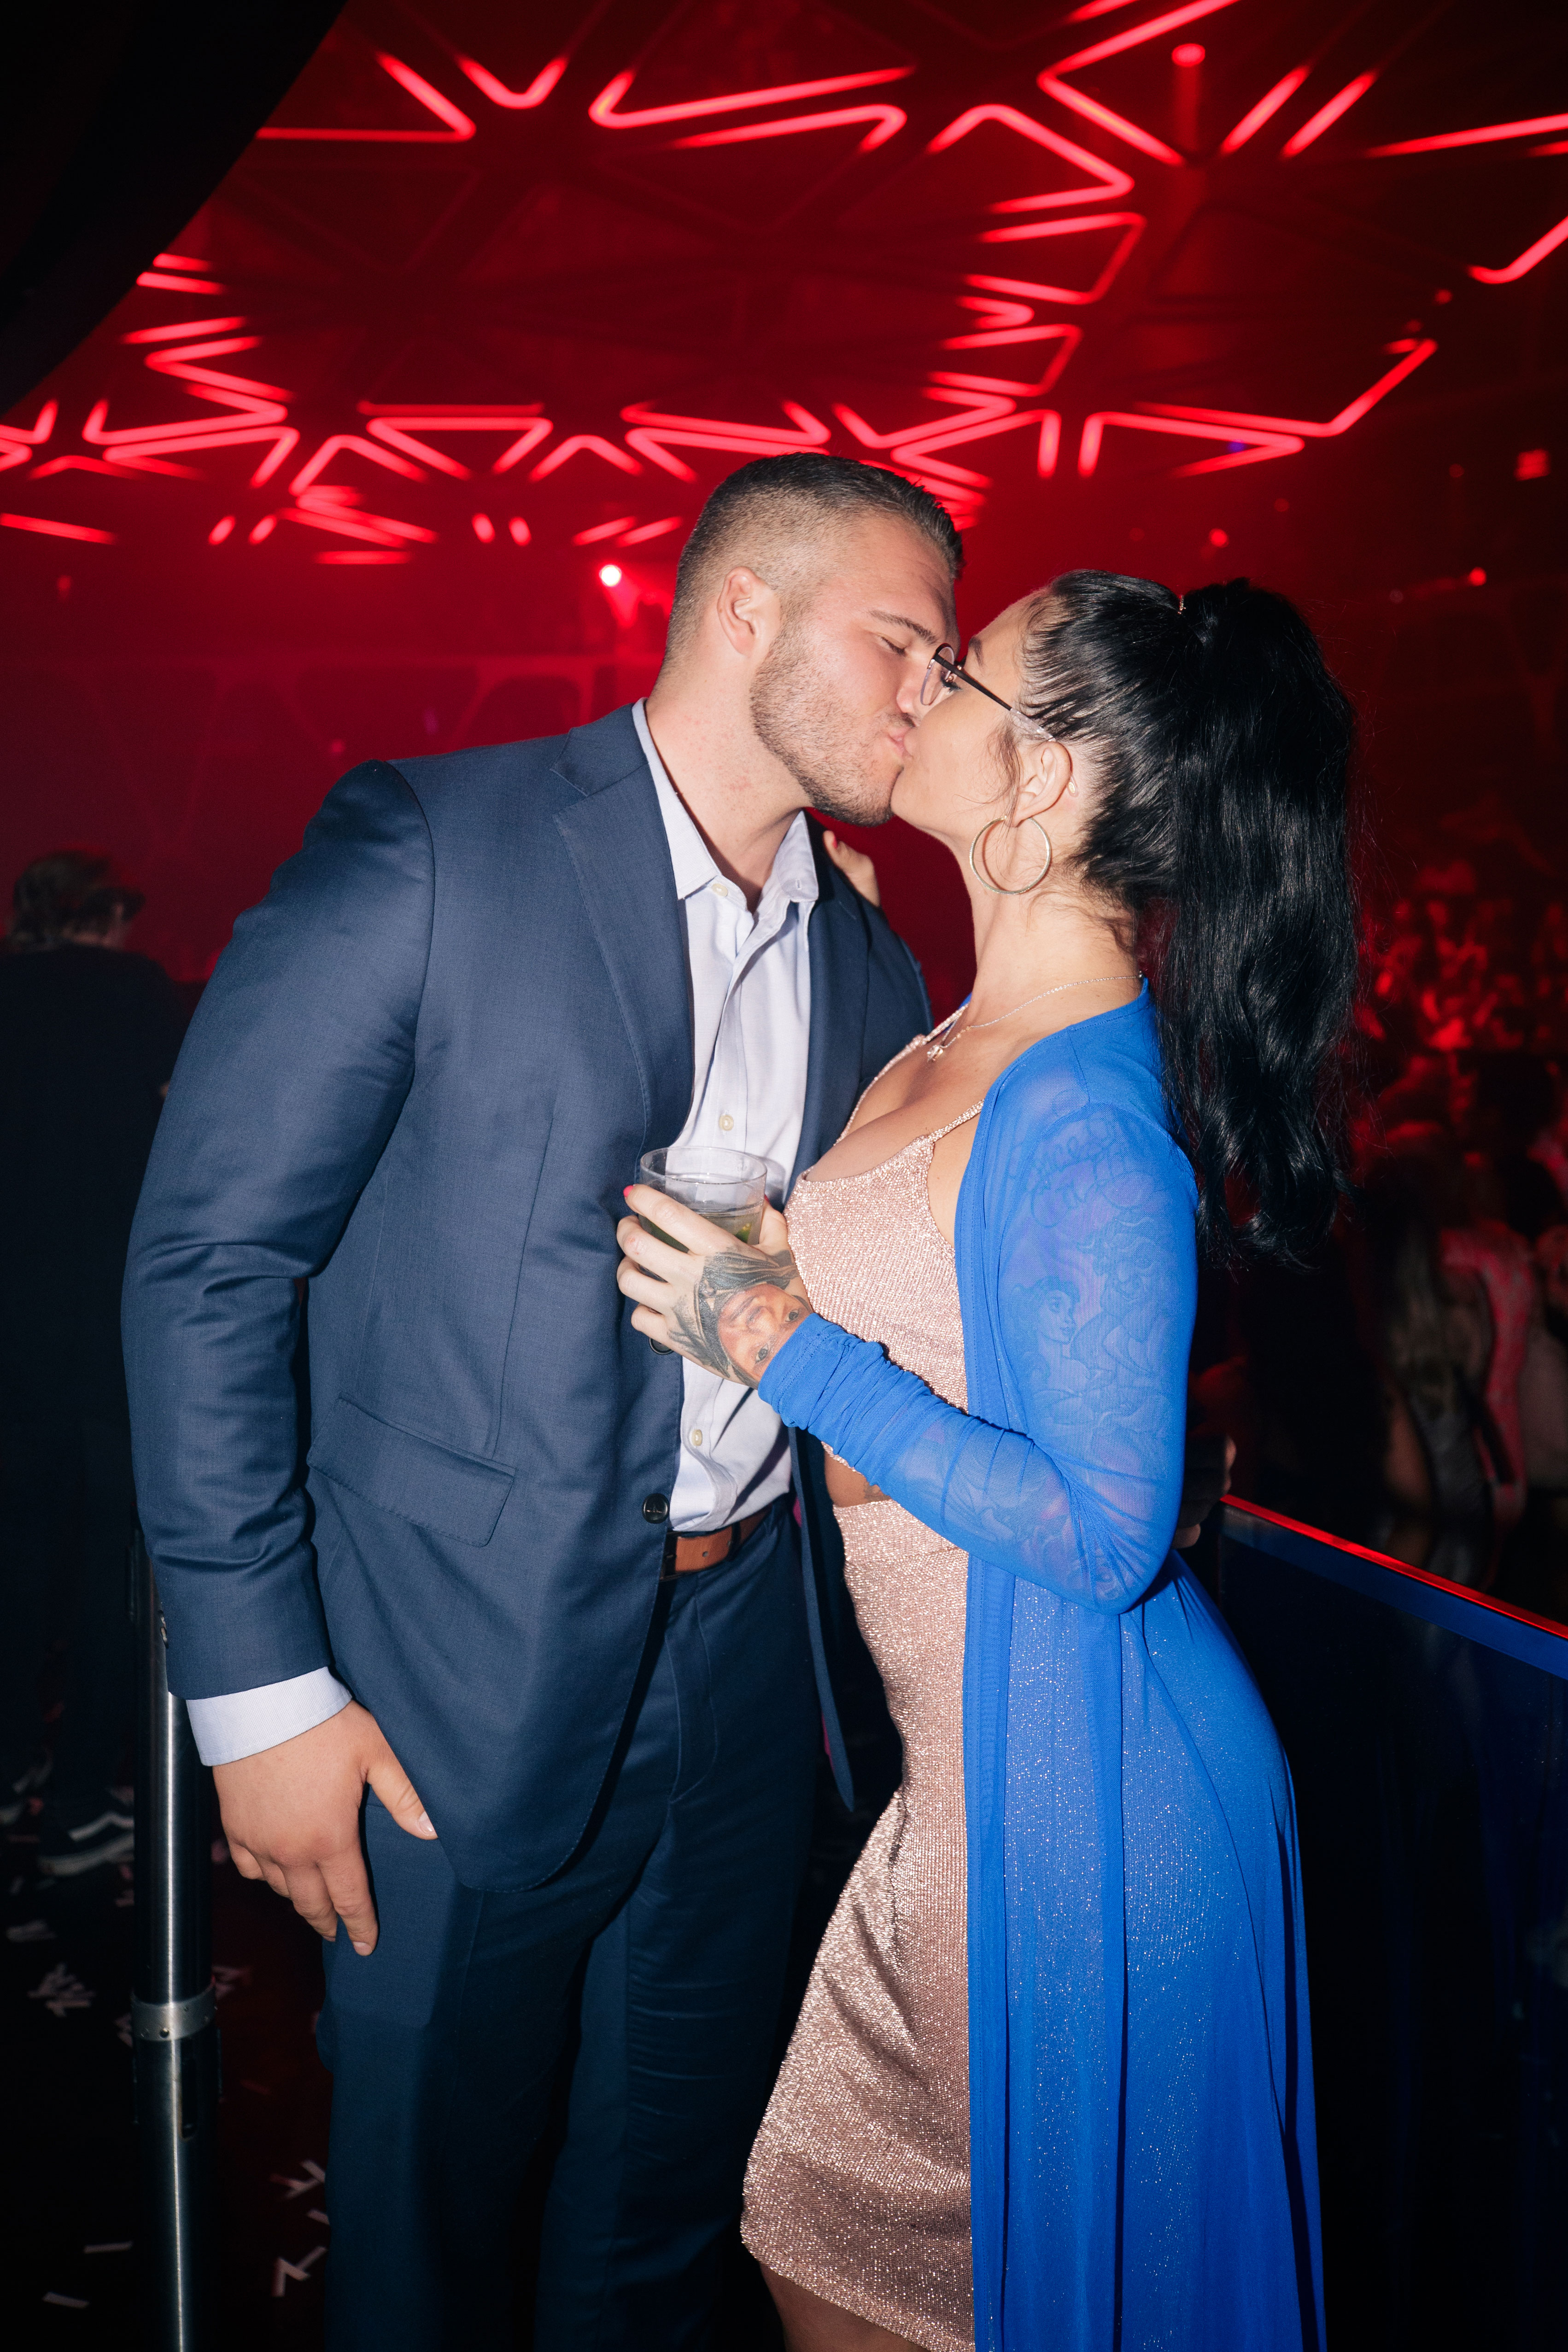 JWoww and Her BF Make Red Carpet Debut in Vegas, Party at Nightclubs - Farley and her man couldn't help but pack on the PDA.